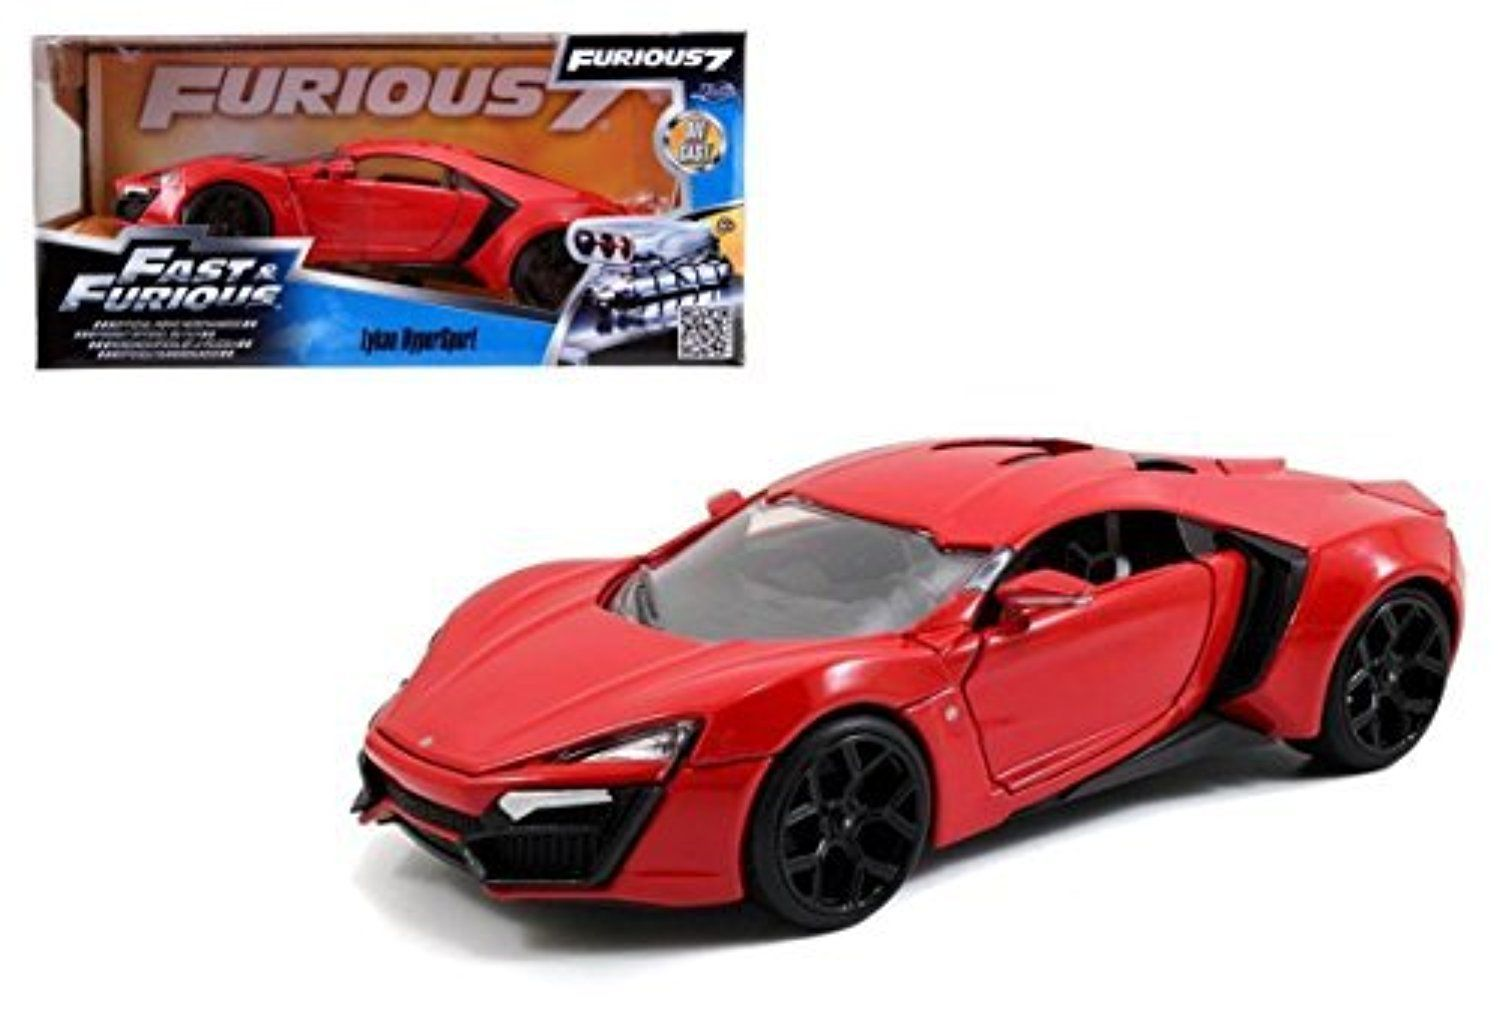 New 1 24 Fast And Furious 7 Lykan Hypersport Diecast Model Car By Jada Toys By Jada Awesome Products Selected By A Diecast Cars Jada Toys Diecast Model Cars